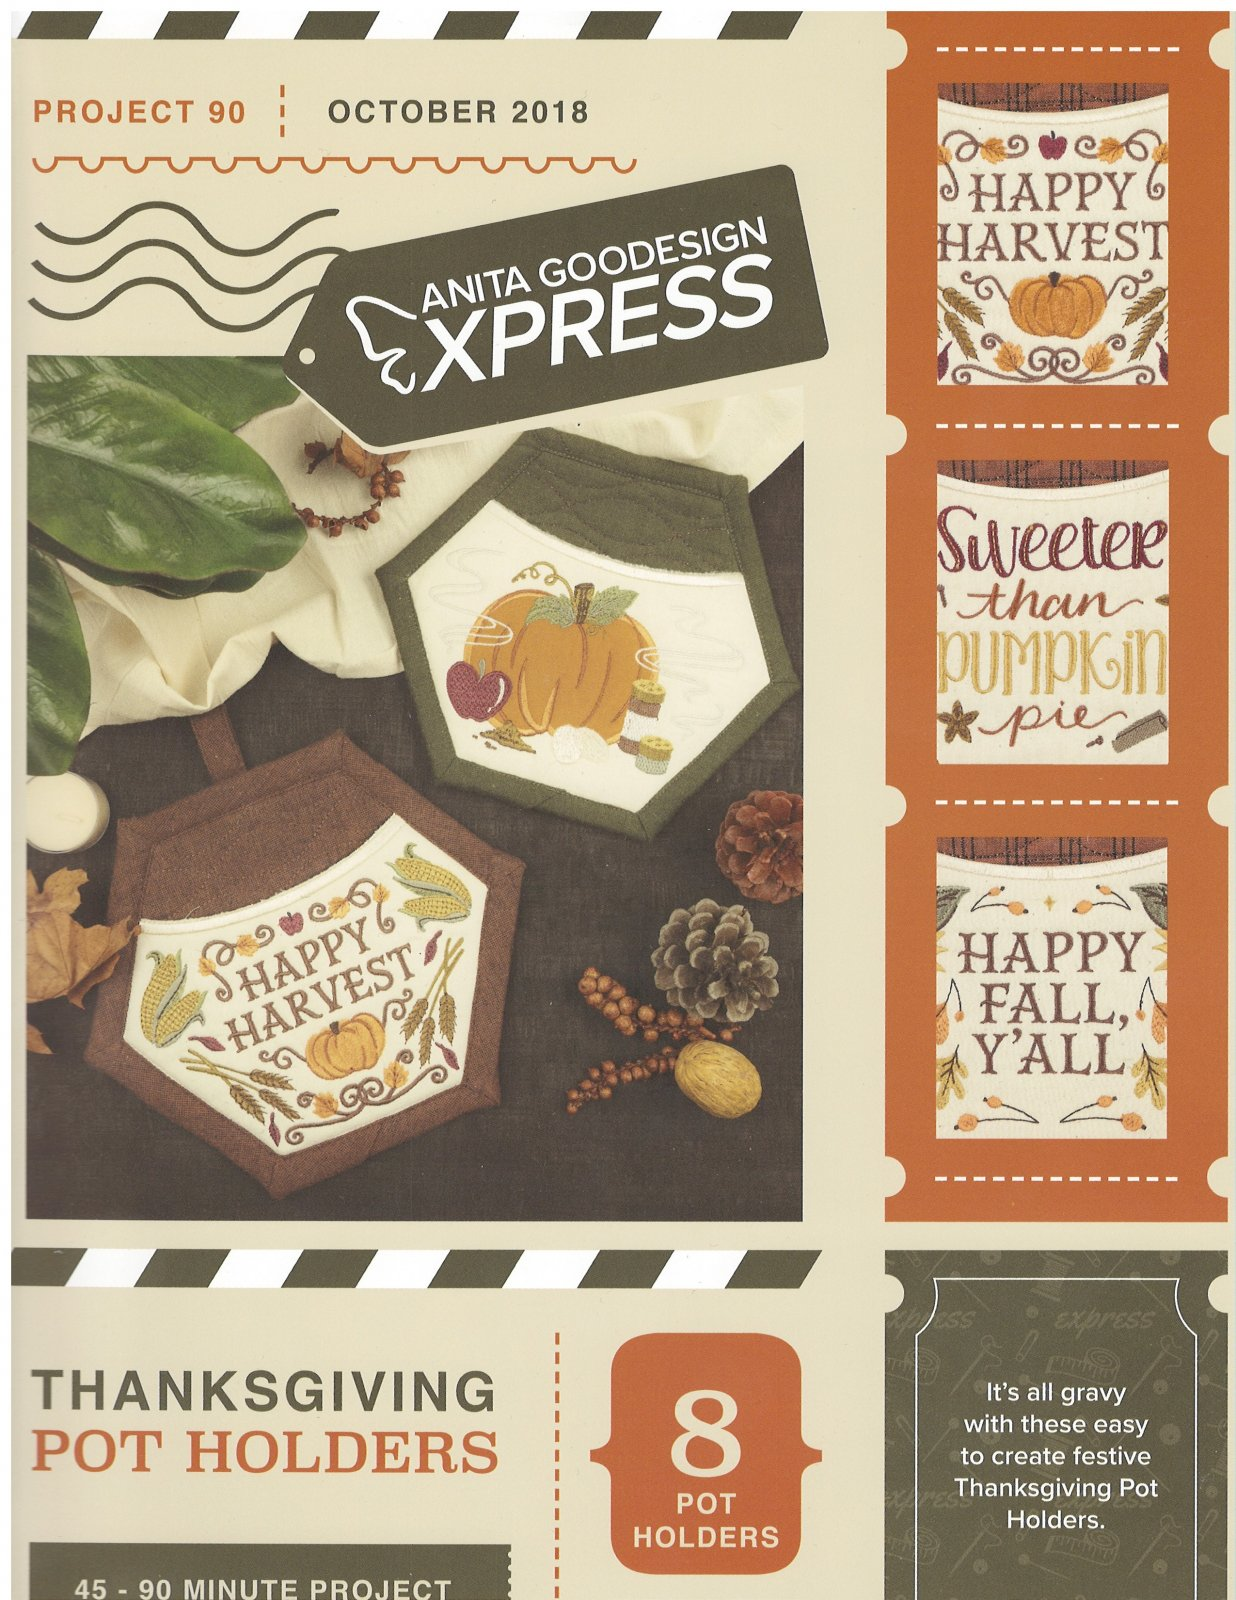 Anita Goodesign Express Machine Embroidery designs Thanksgiving Pot Holders Full Collection CD